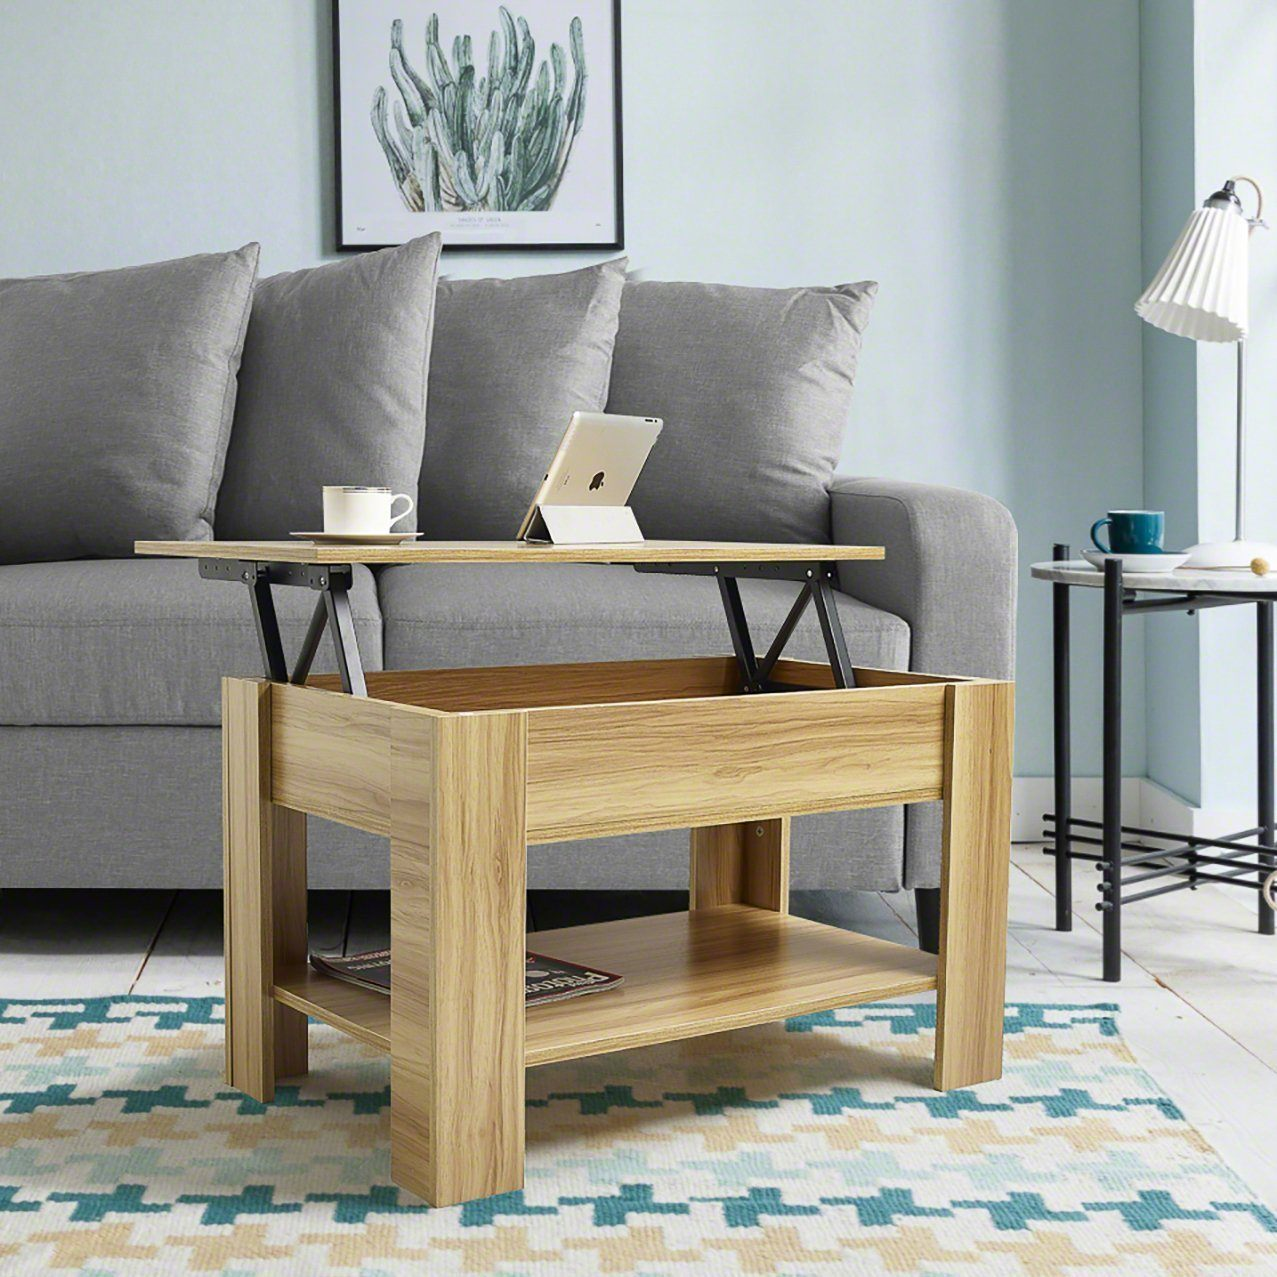 Lift up Top Coffee Table with Storage & Shelf - Beech - Laura James